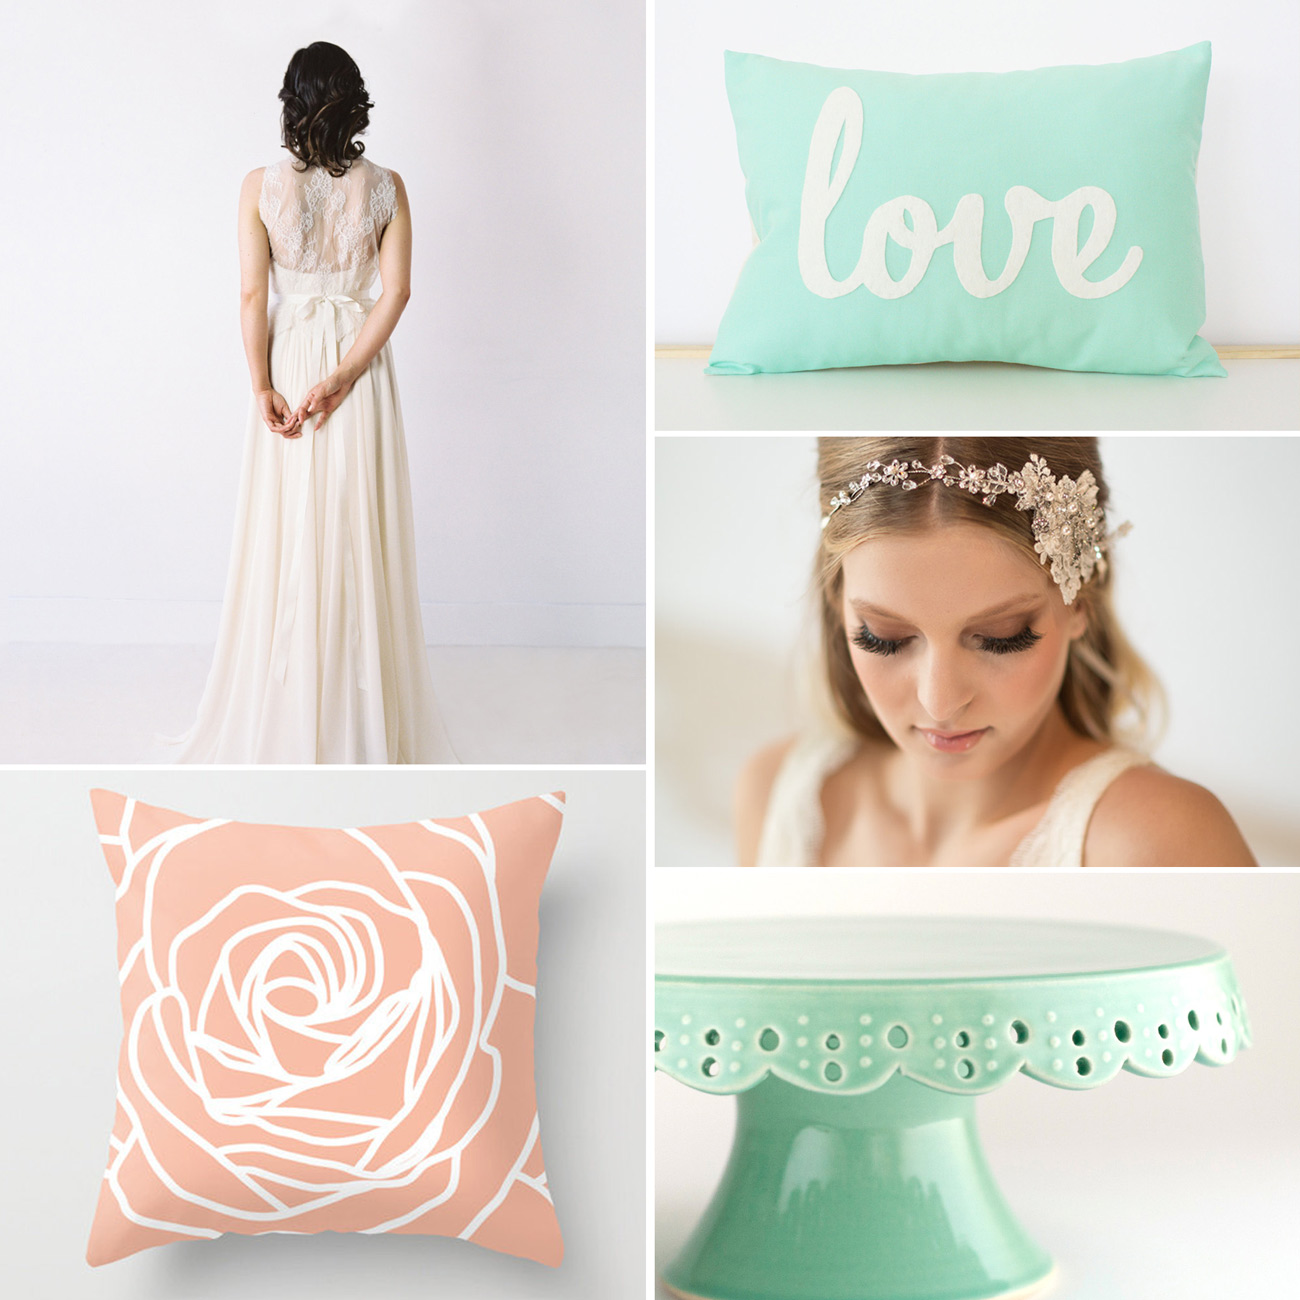 Spring Etsy Wedding Finds from Alyssa Schroeder